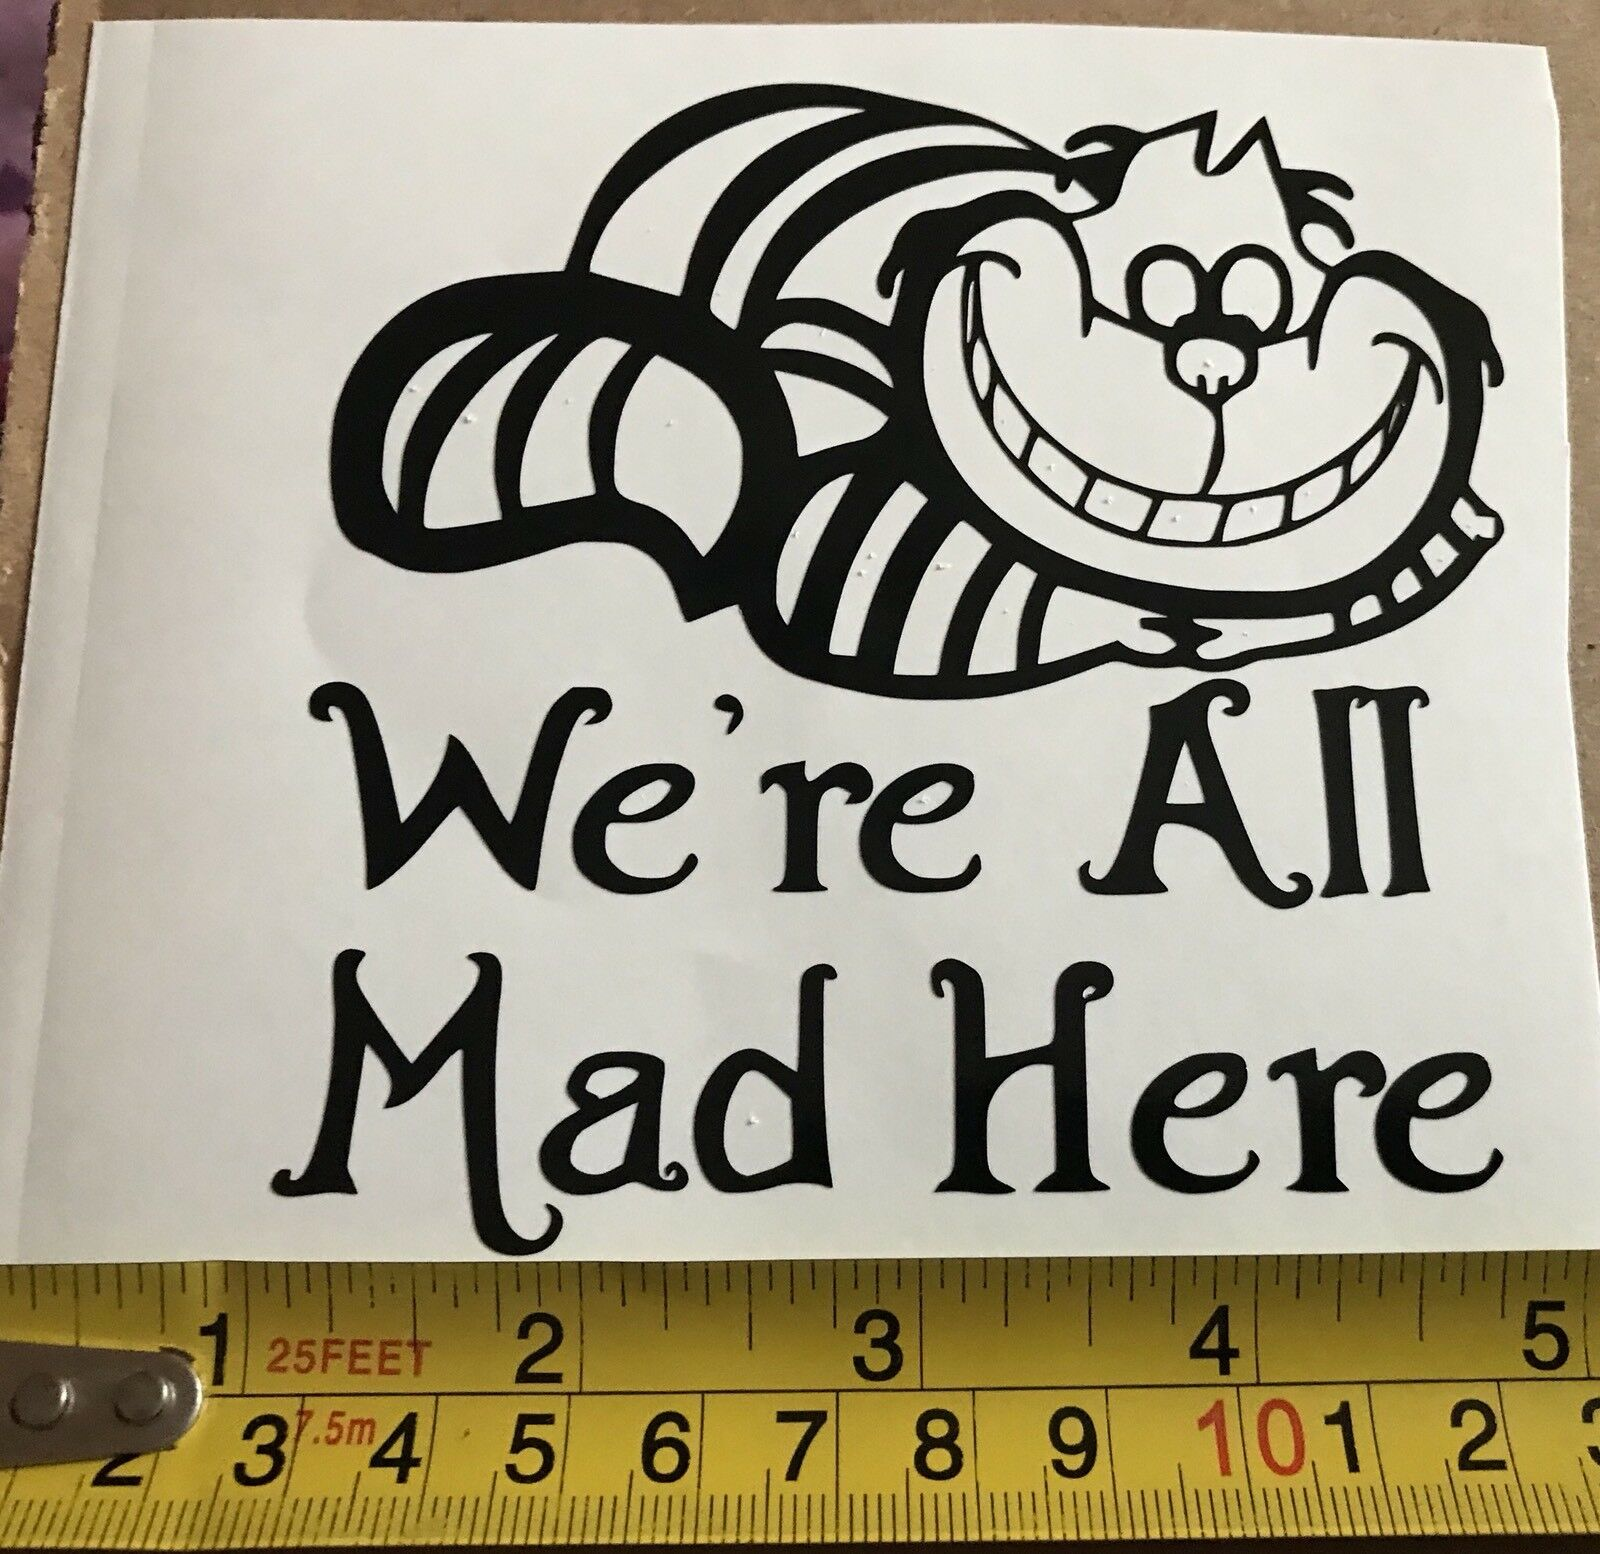 Car window decal disney cheshire cat were all mad here funny vinyl sticker 1 of 1free shipping